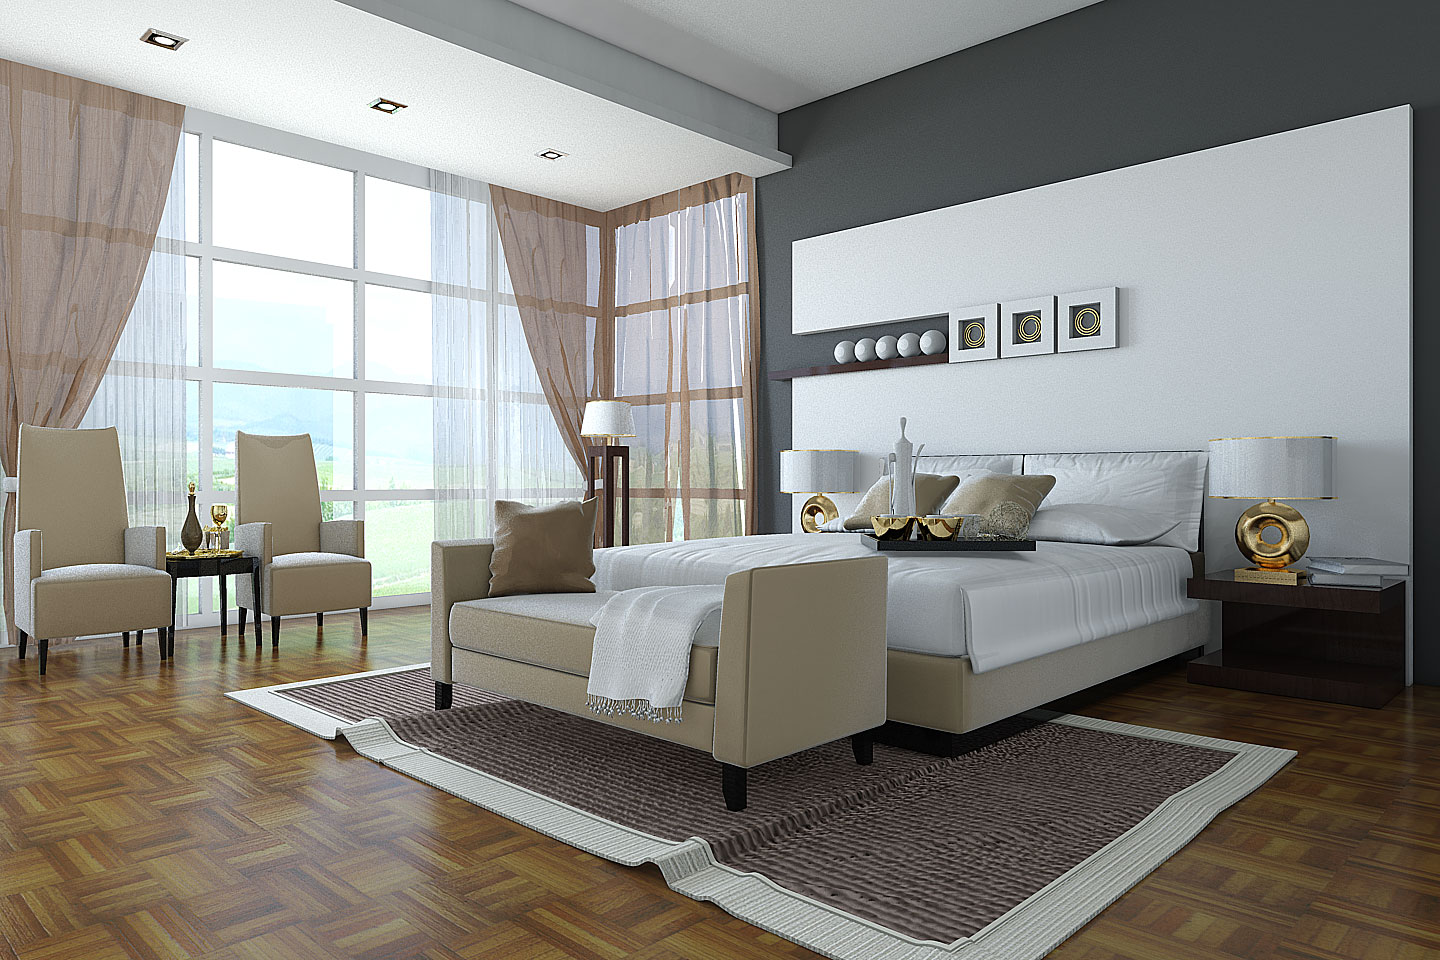 classic bedroom design - Design For A Bedroom